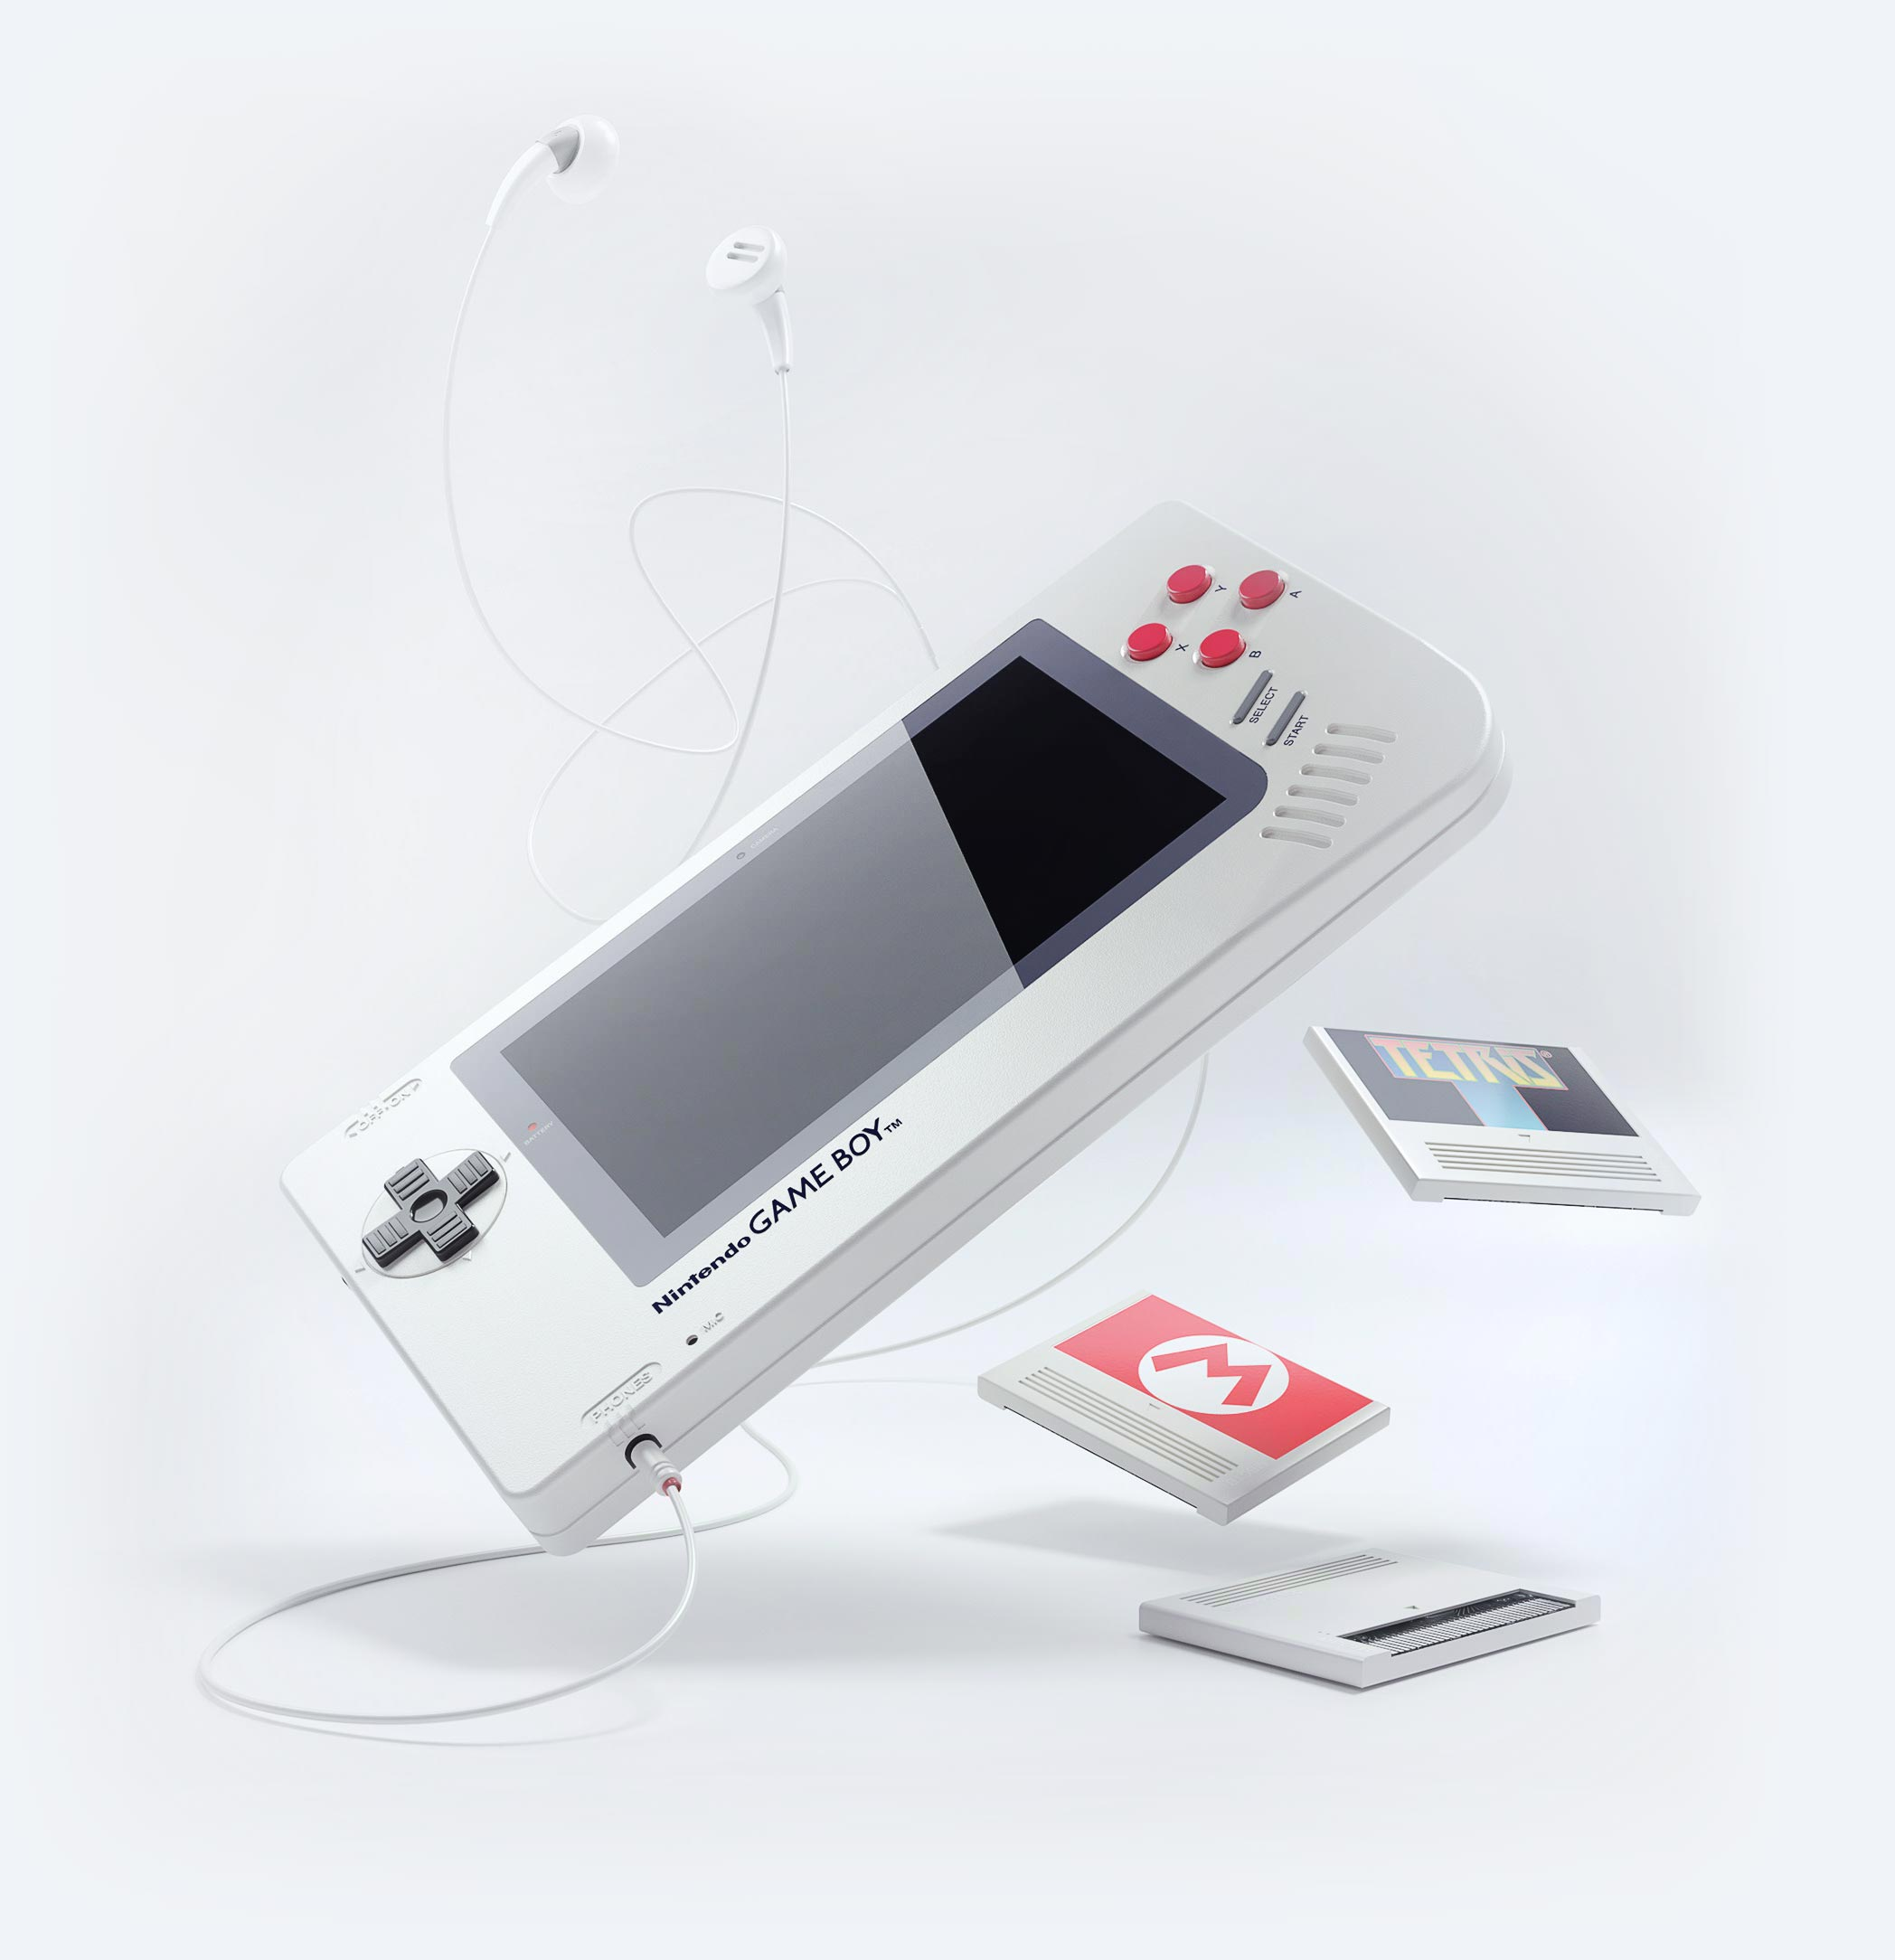 gameboy_1up_FlorianRenner_13